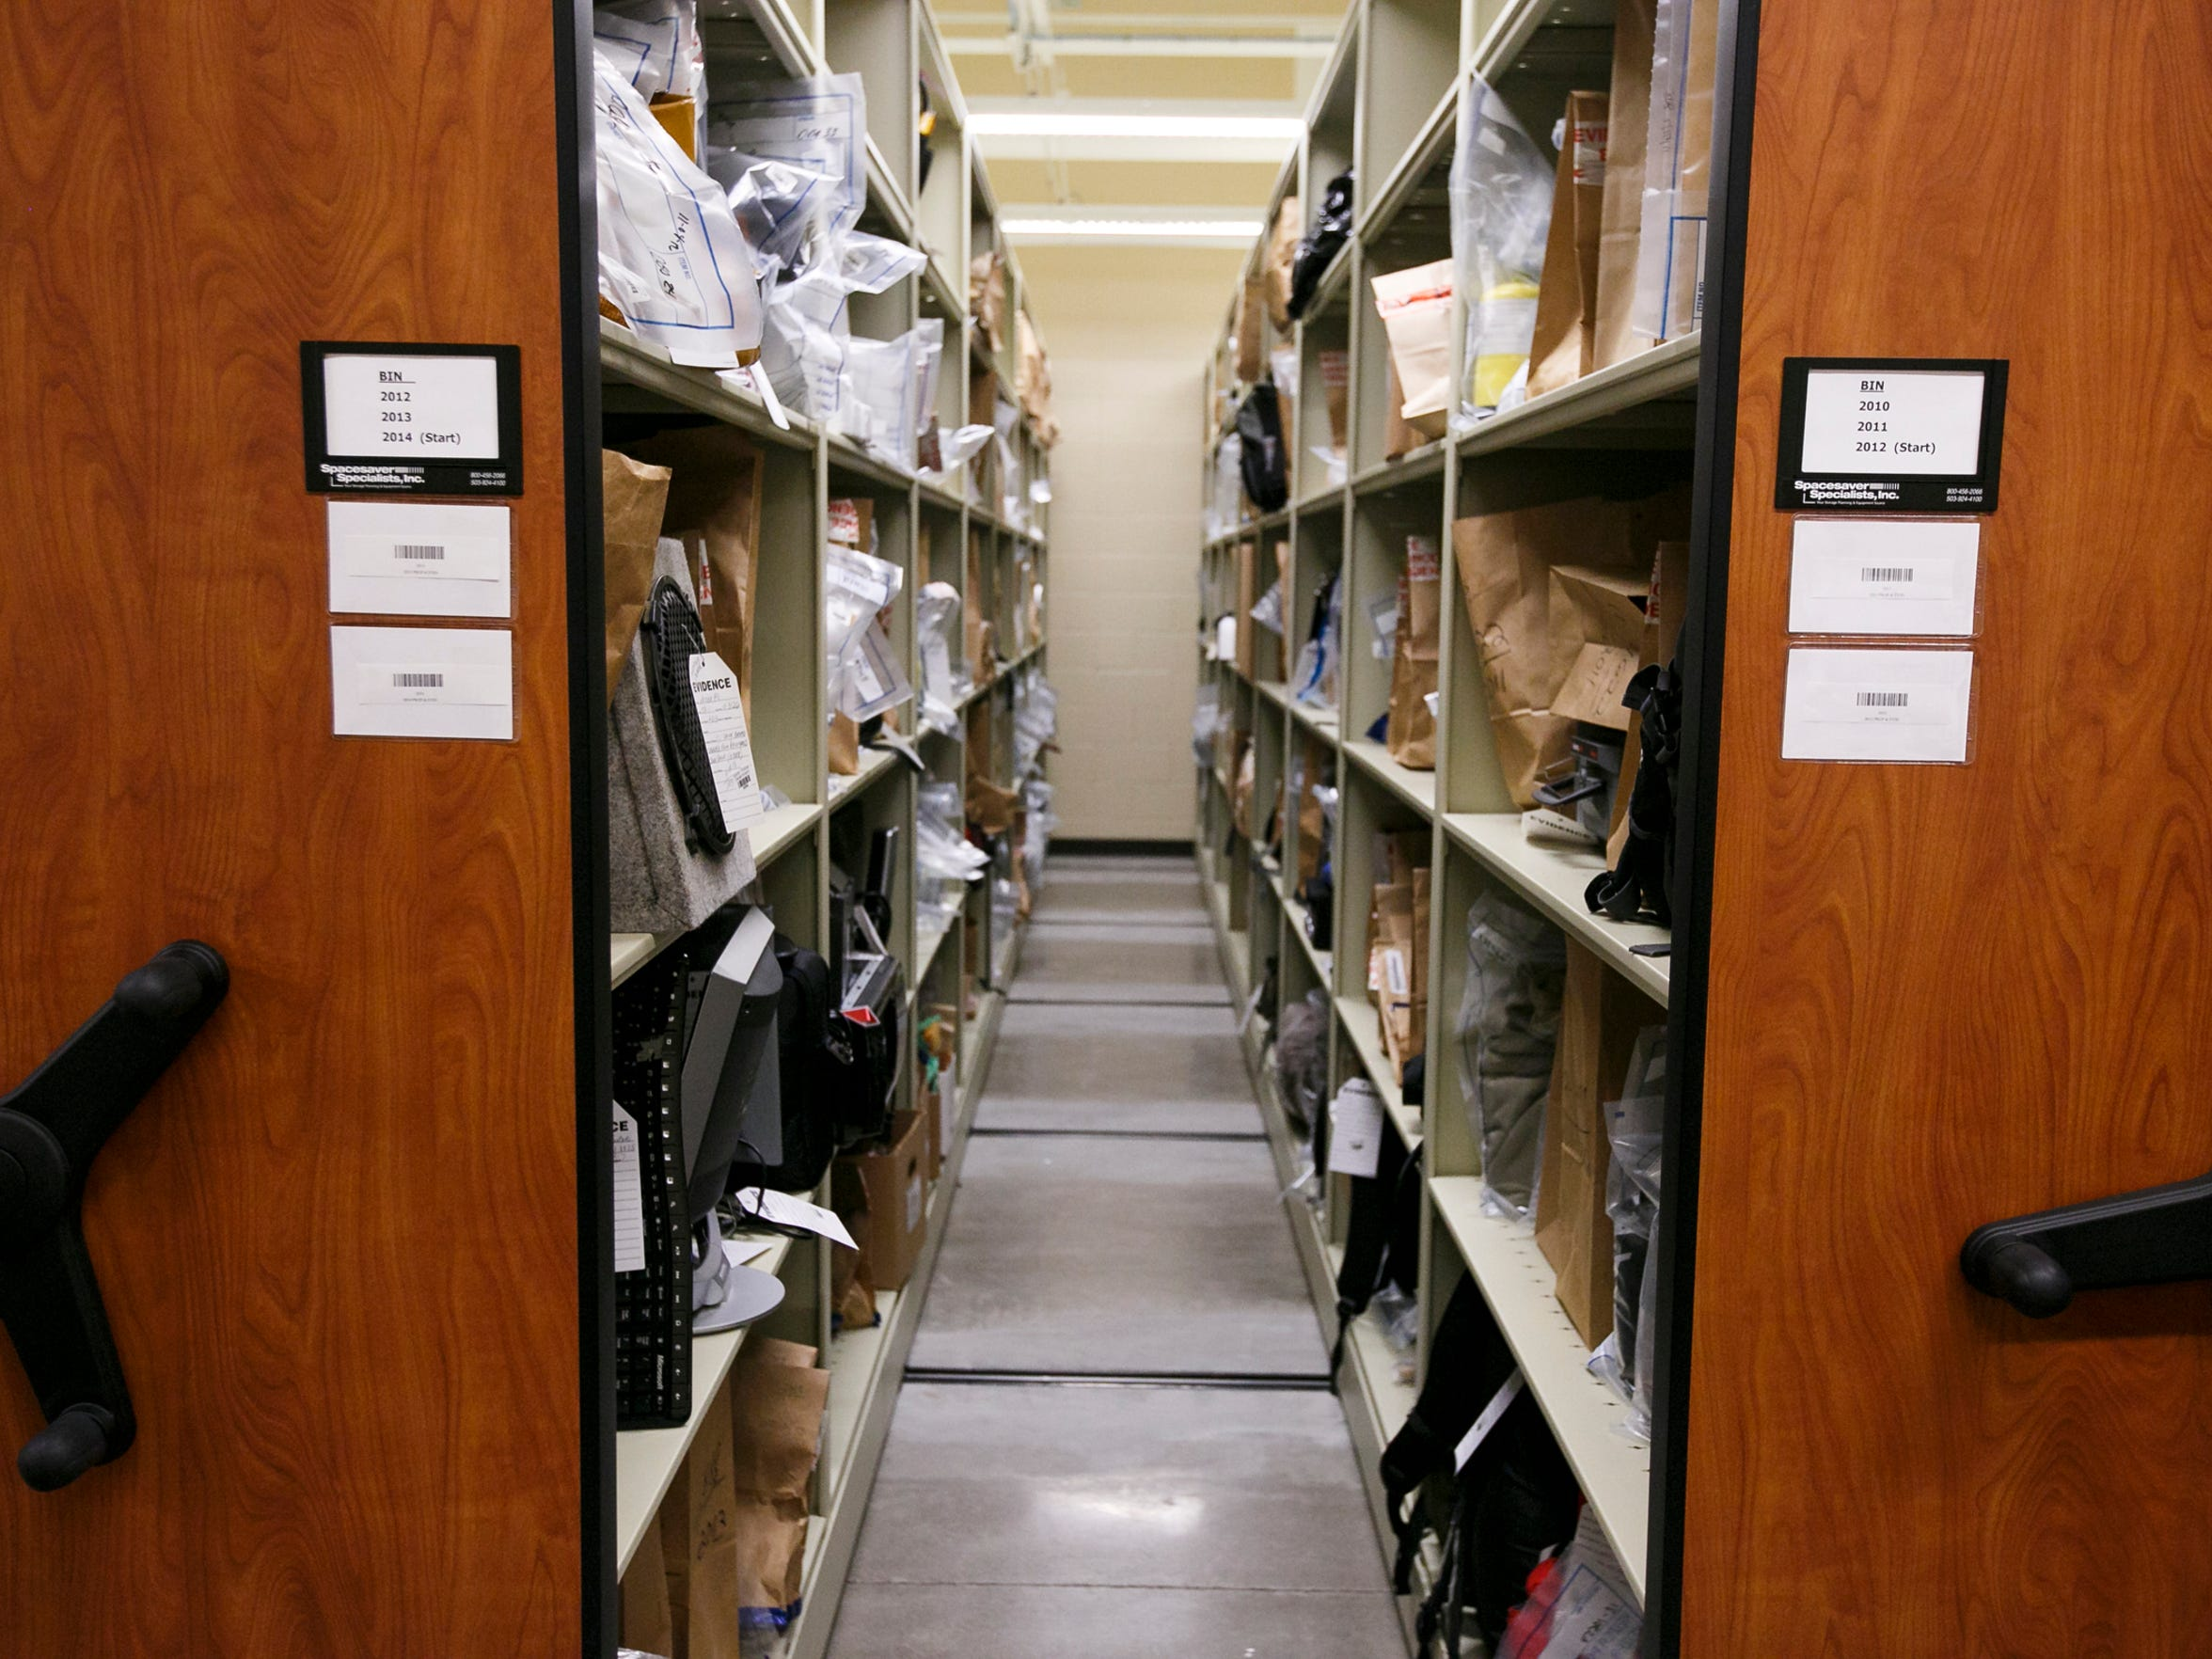 The evidence storage room at the Keizer Police Department, though already full of evidence, is a stark contrast to the overfilled area at the Salem Police Department.